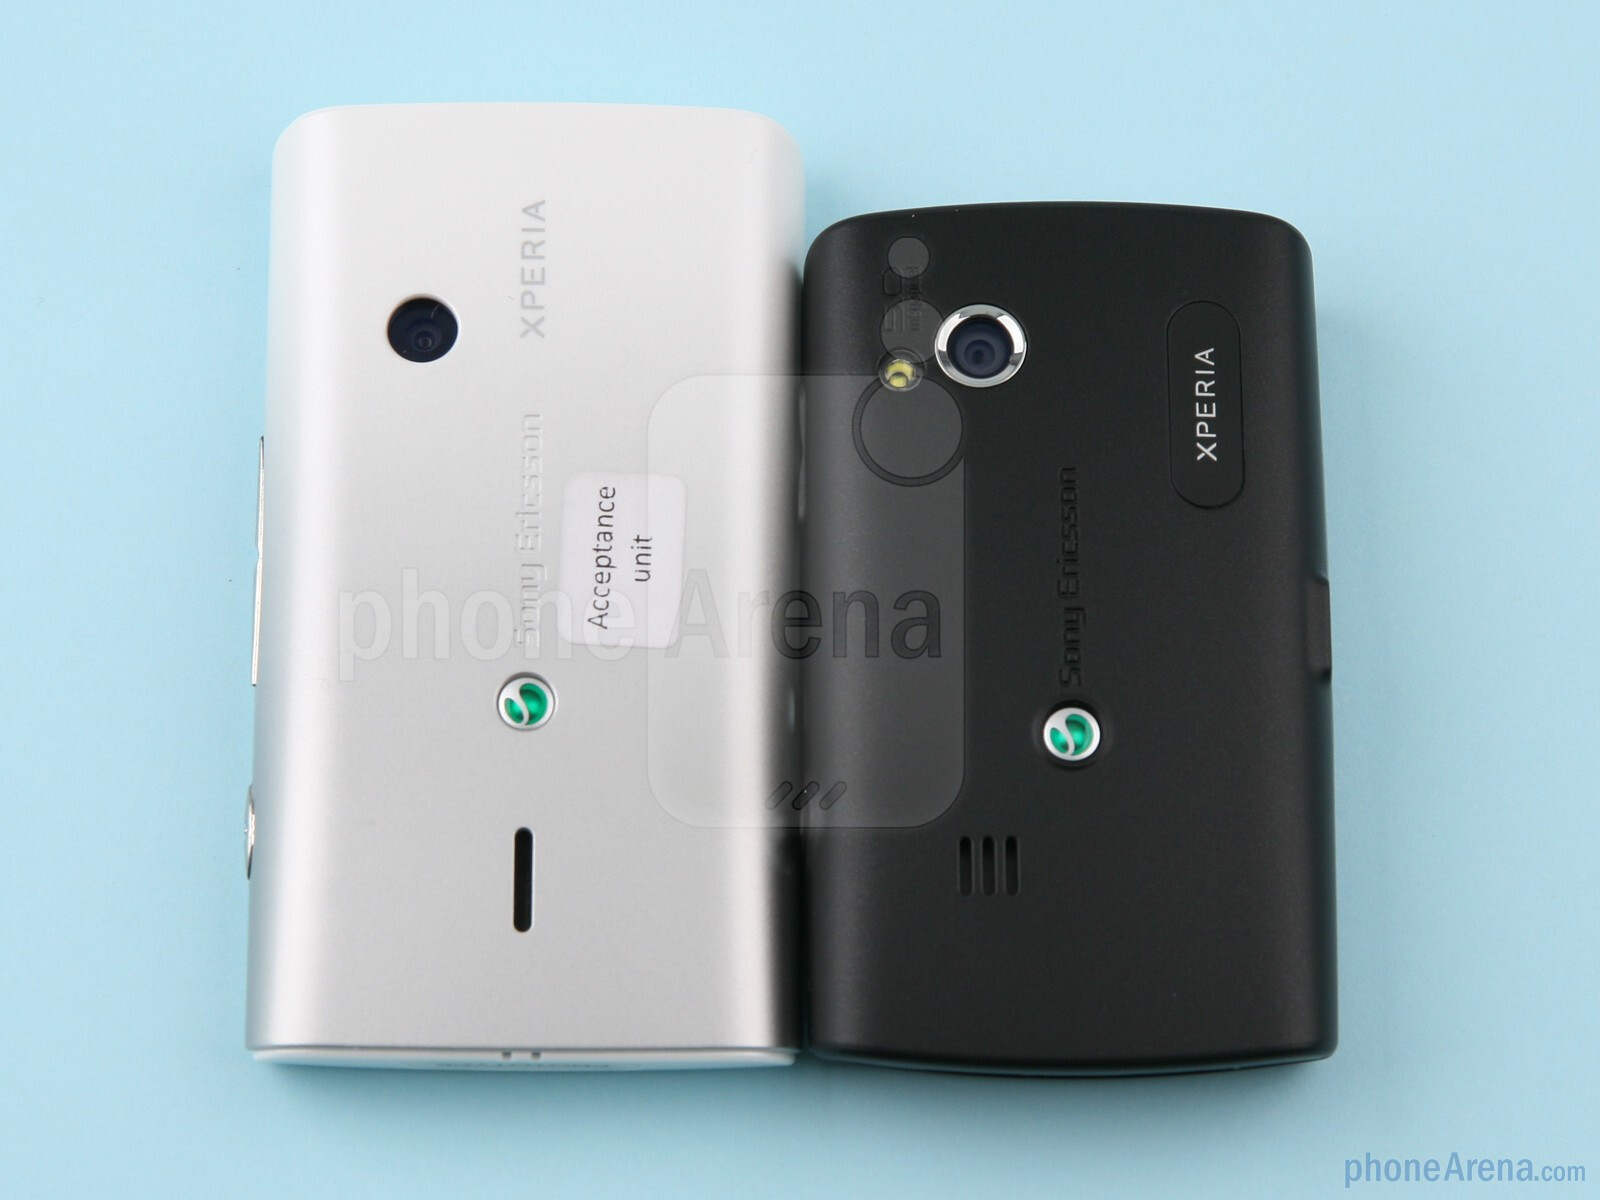 sony ericsson xperia x8 preview. Black Bedroom Furniture Sets. Home Design Ideas